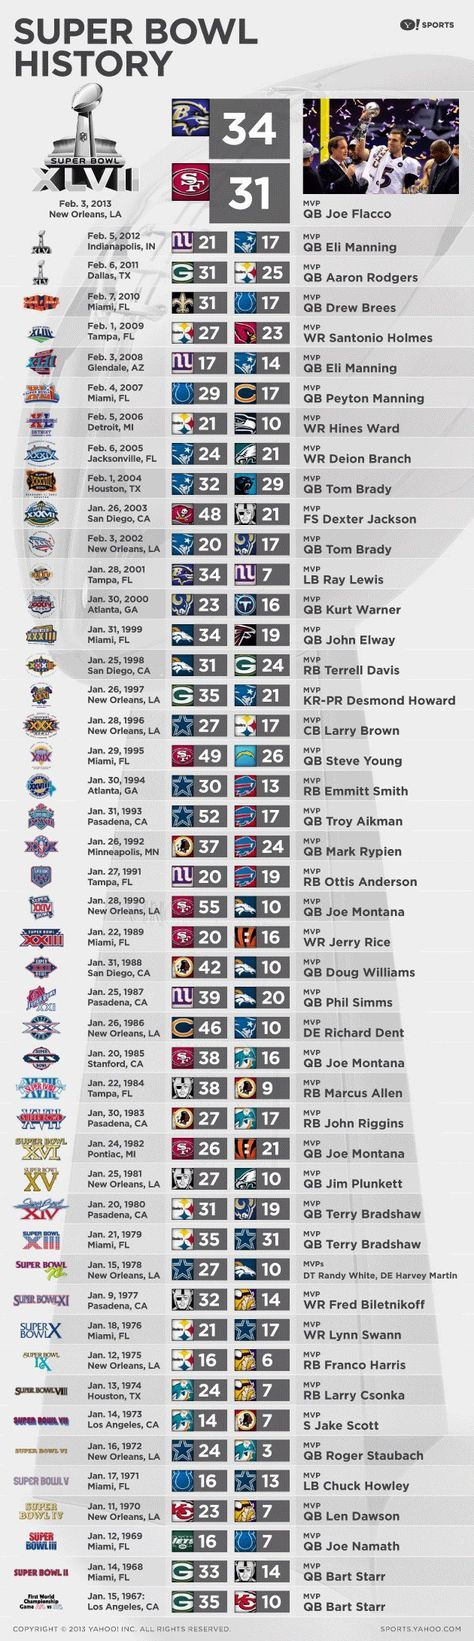 From Super Bowl I to Super Bowl XLVII, see every Super Bowl champ & MVP (via @Yahoo!!!!!!!!!!! Sports)